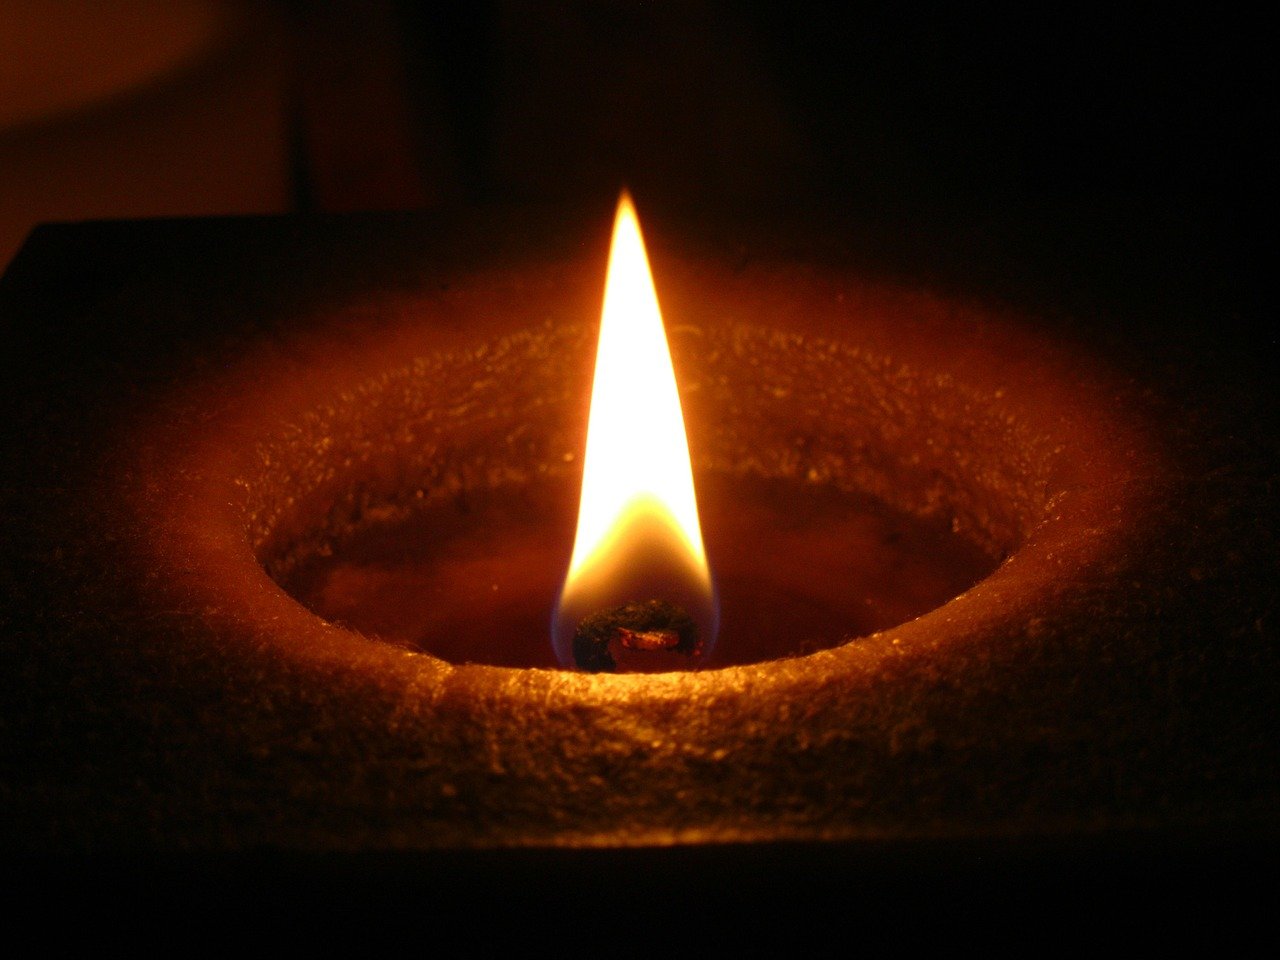 candle flame wax candle free photo